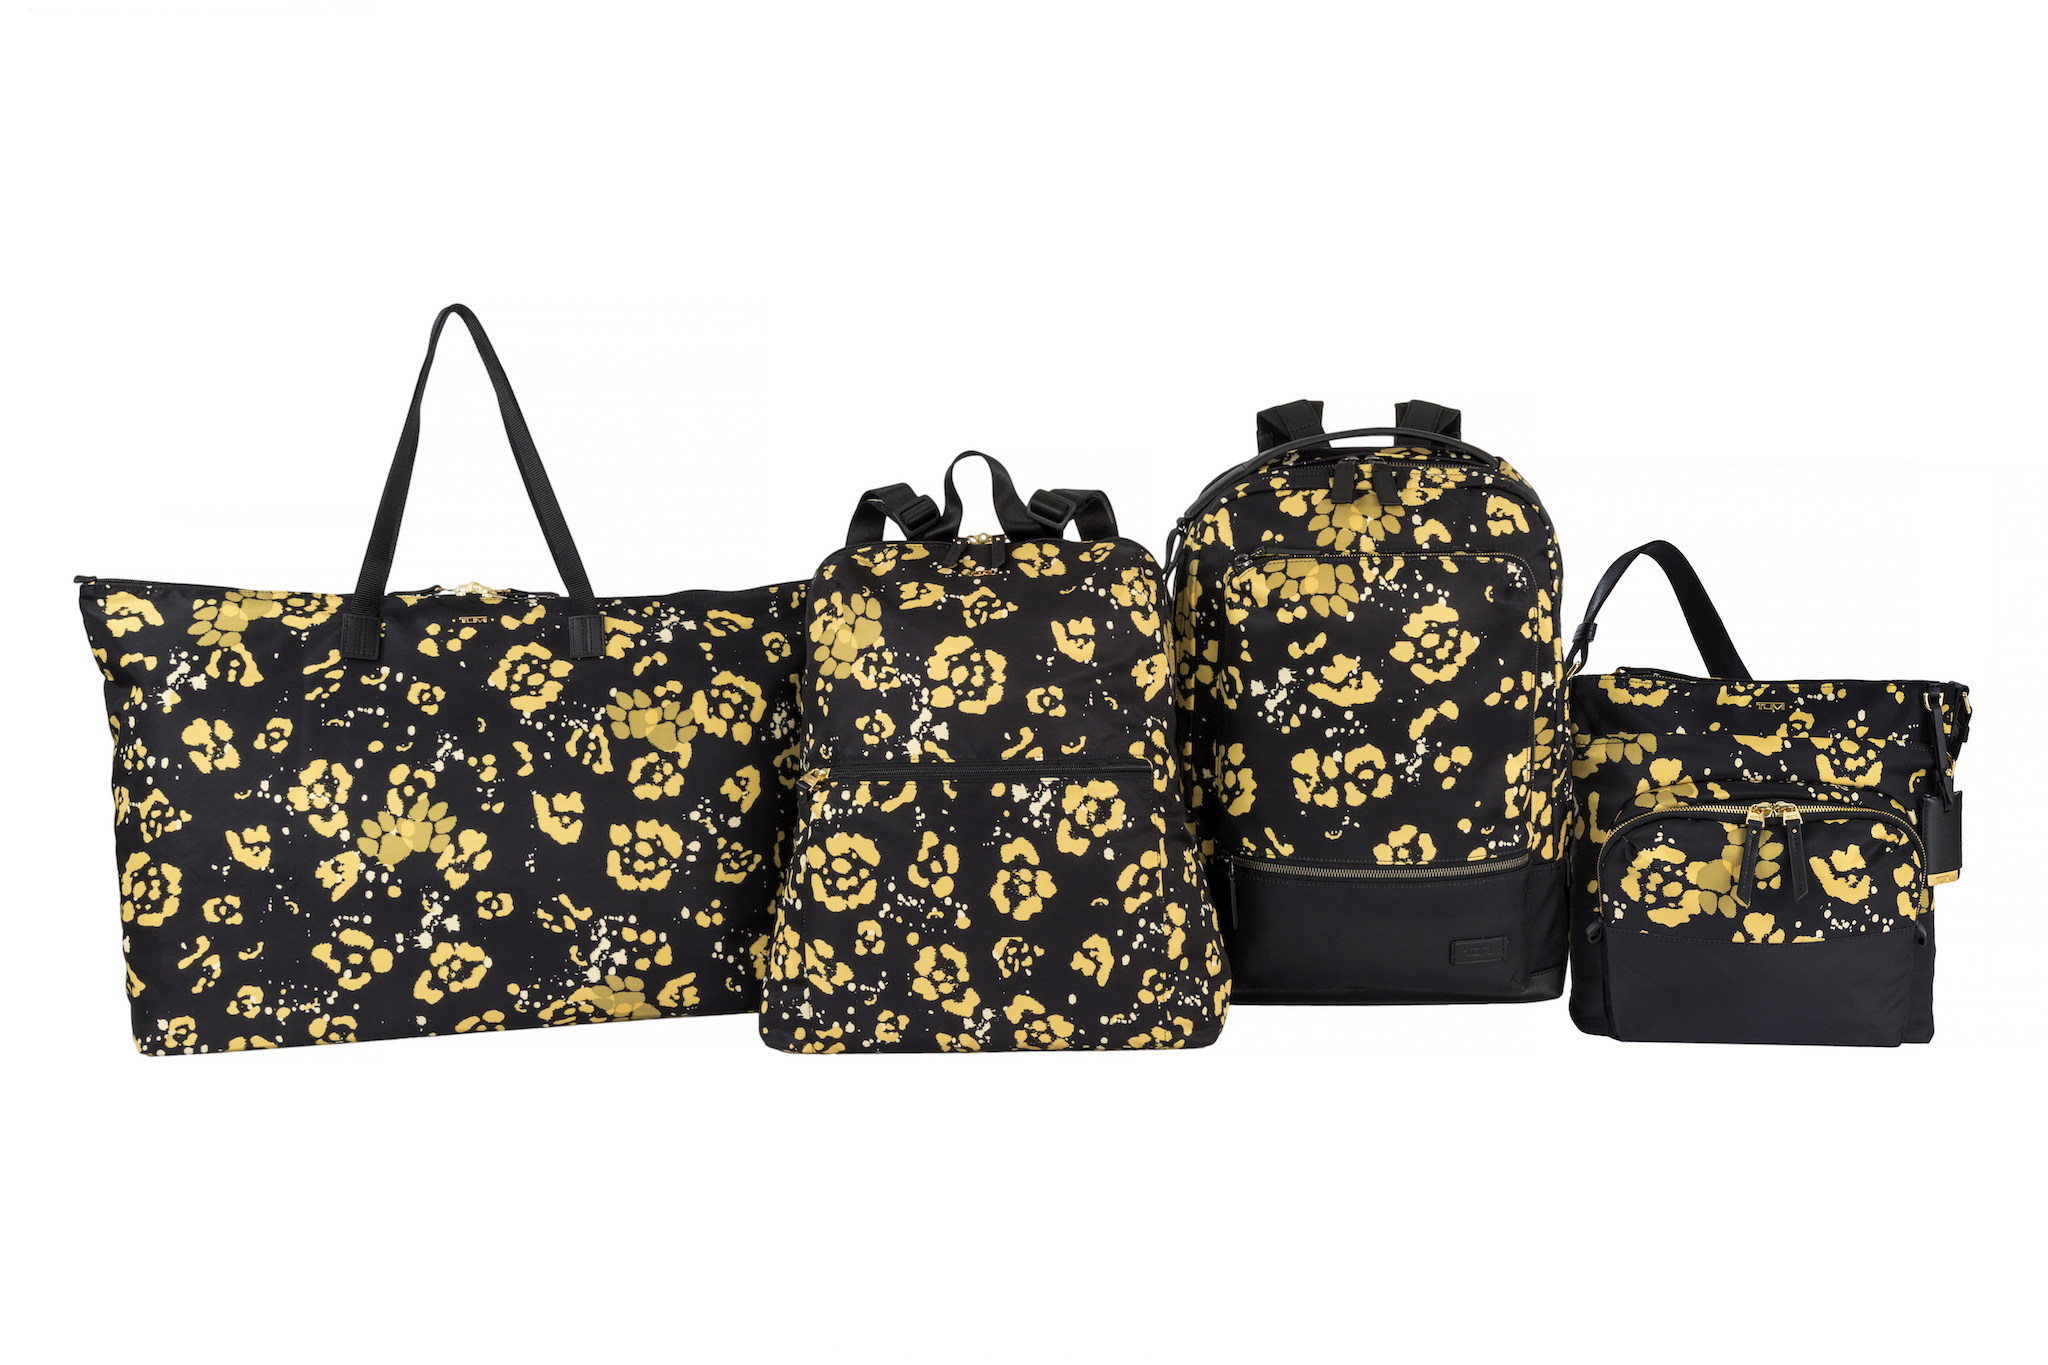 black and gold travel bags